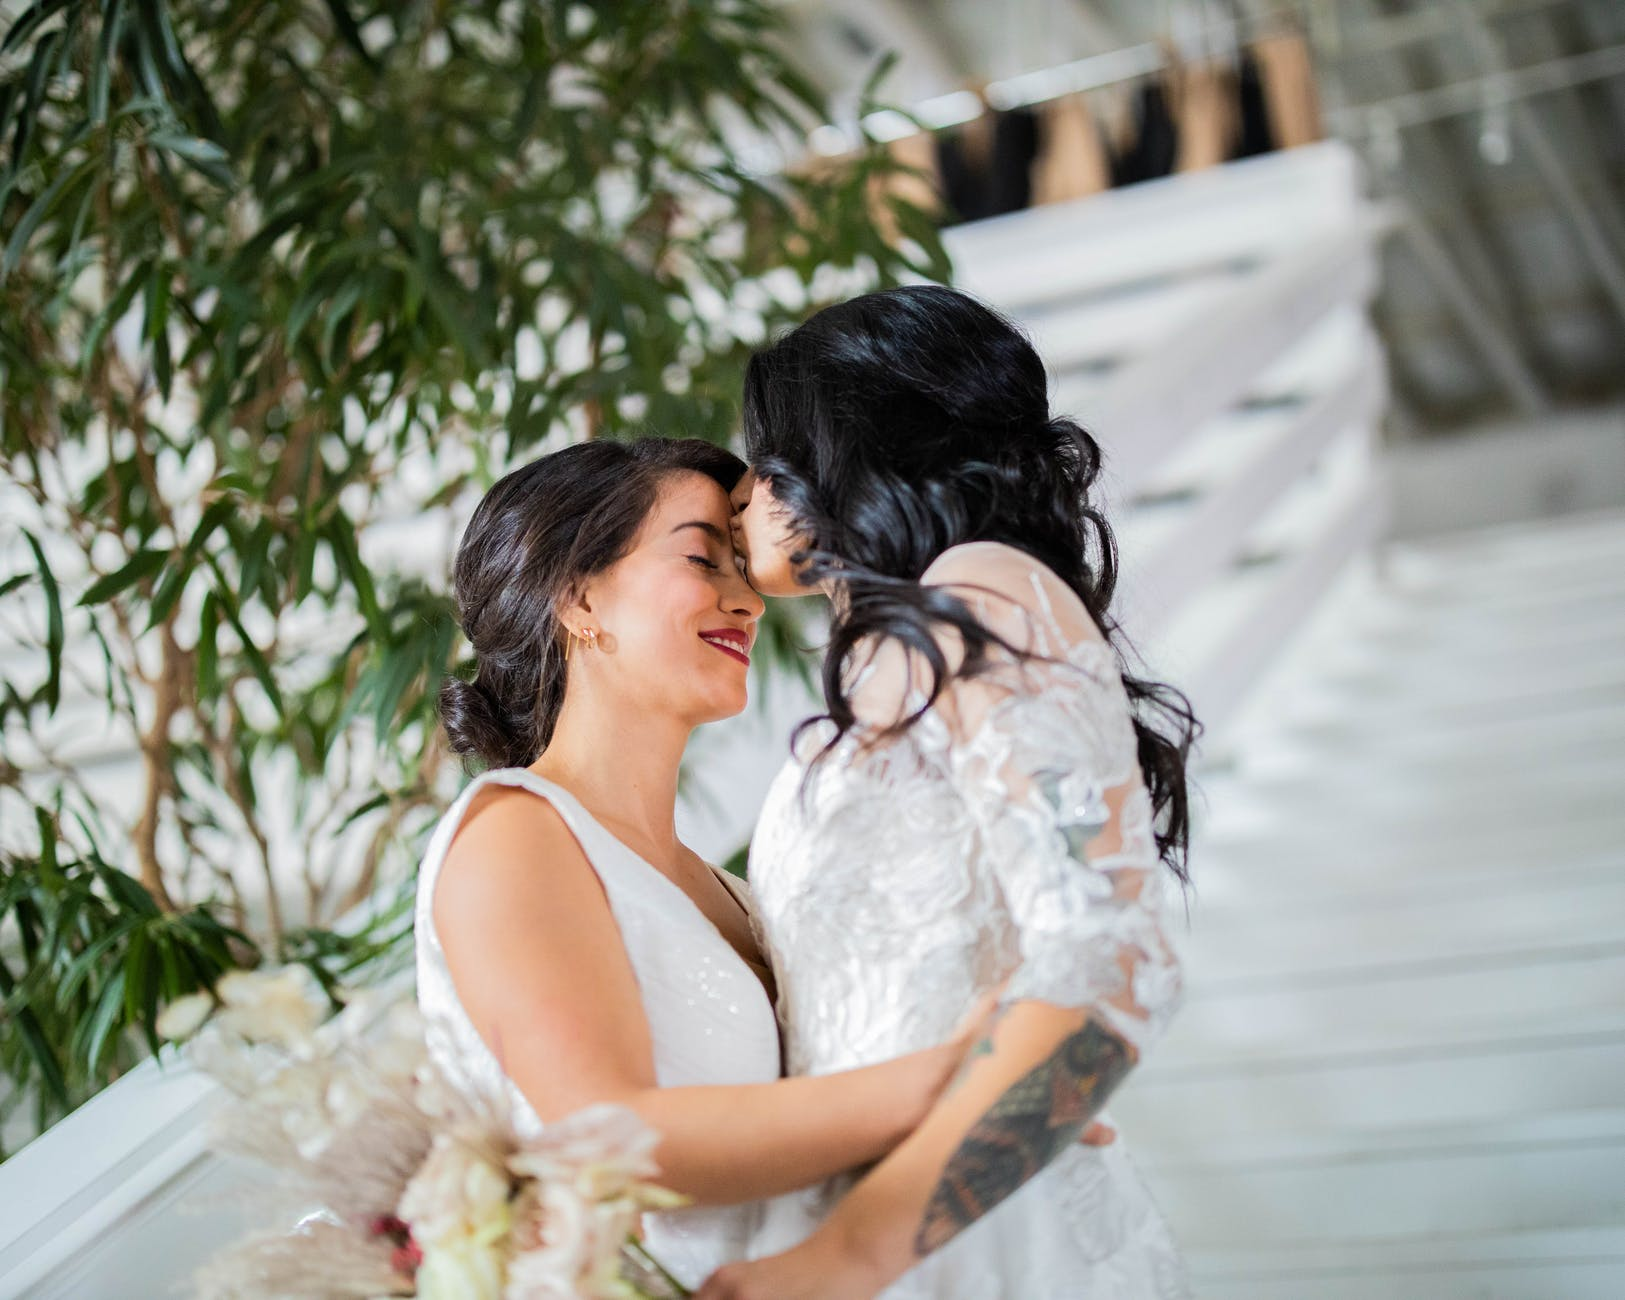 woman in white floral dress kissing woman in white dress